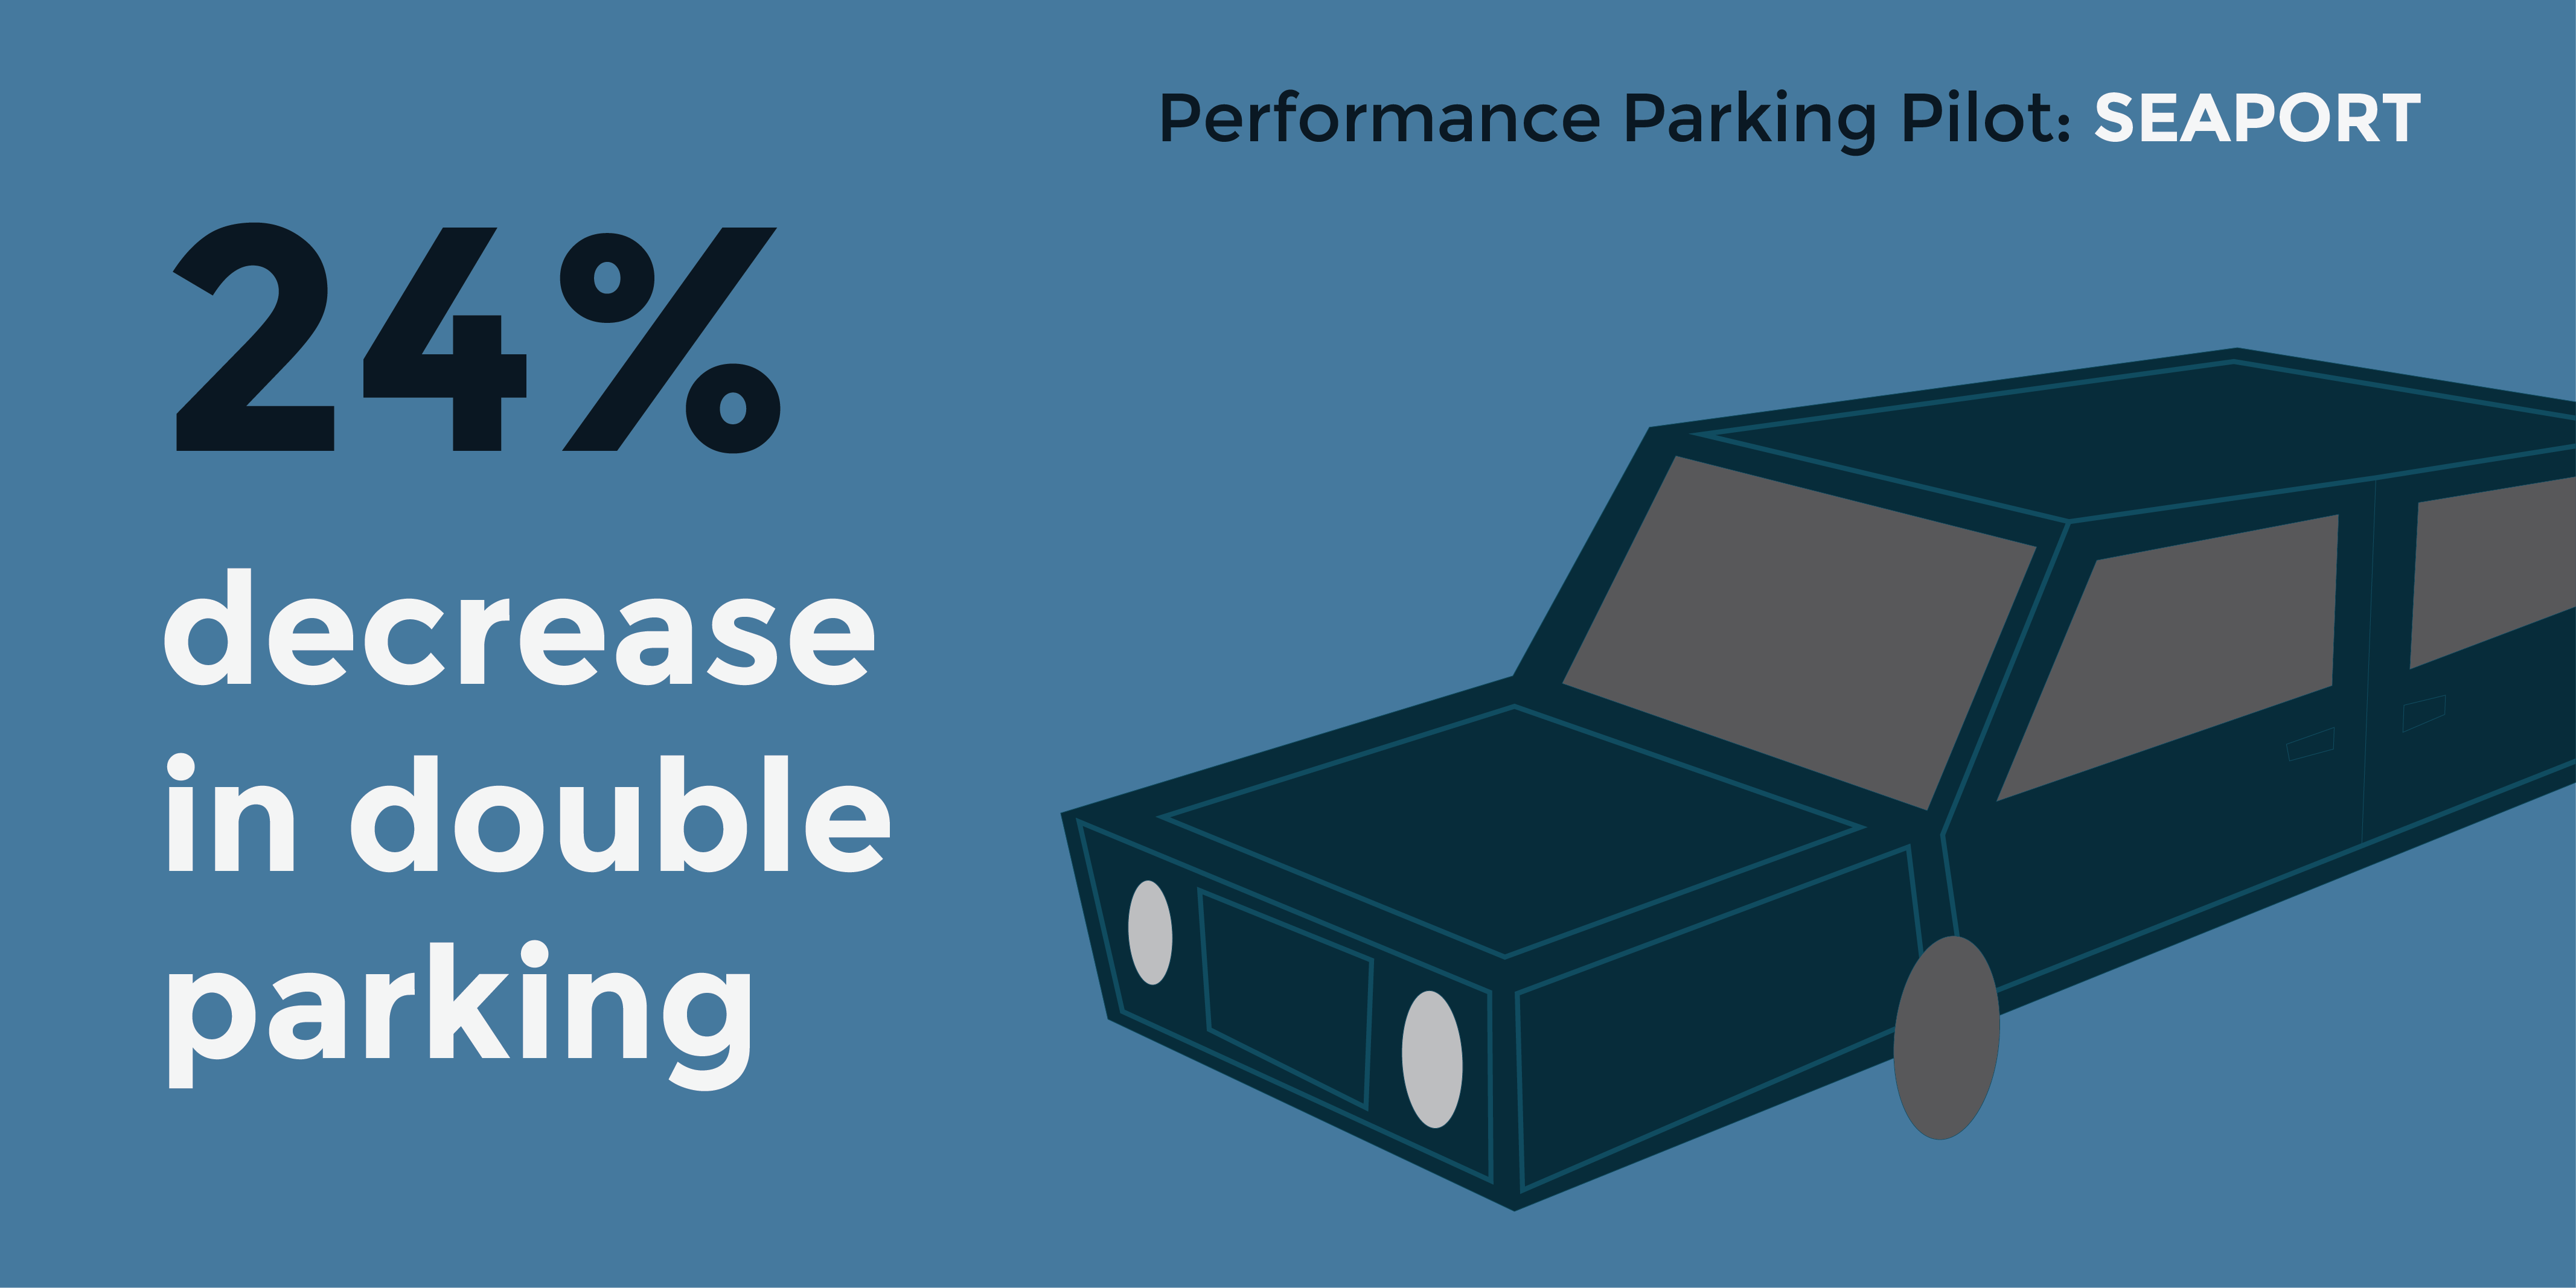 Image for seaport district double parking statistics